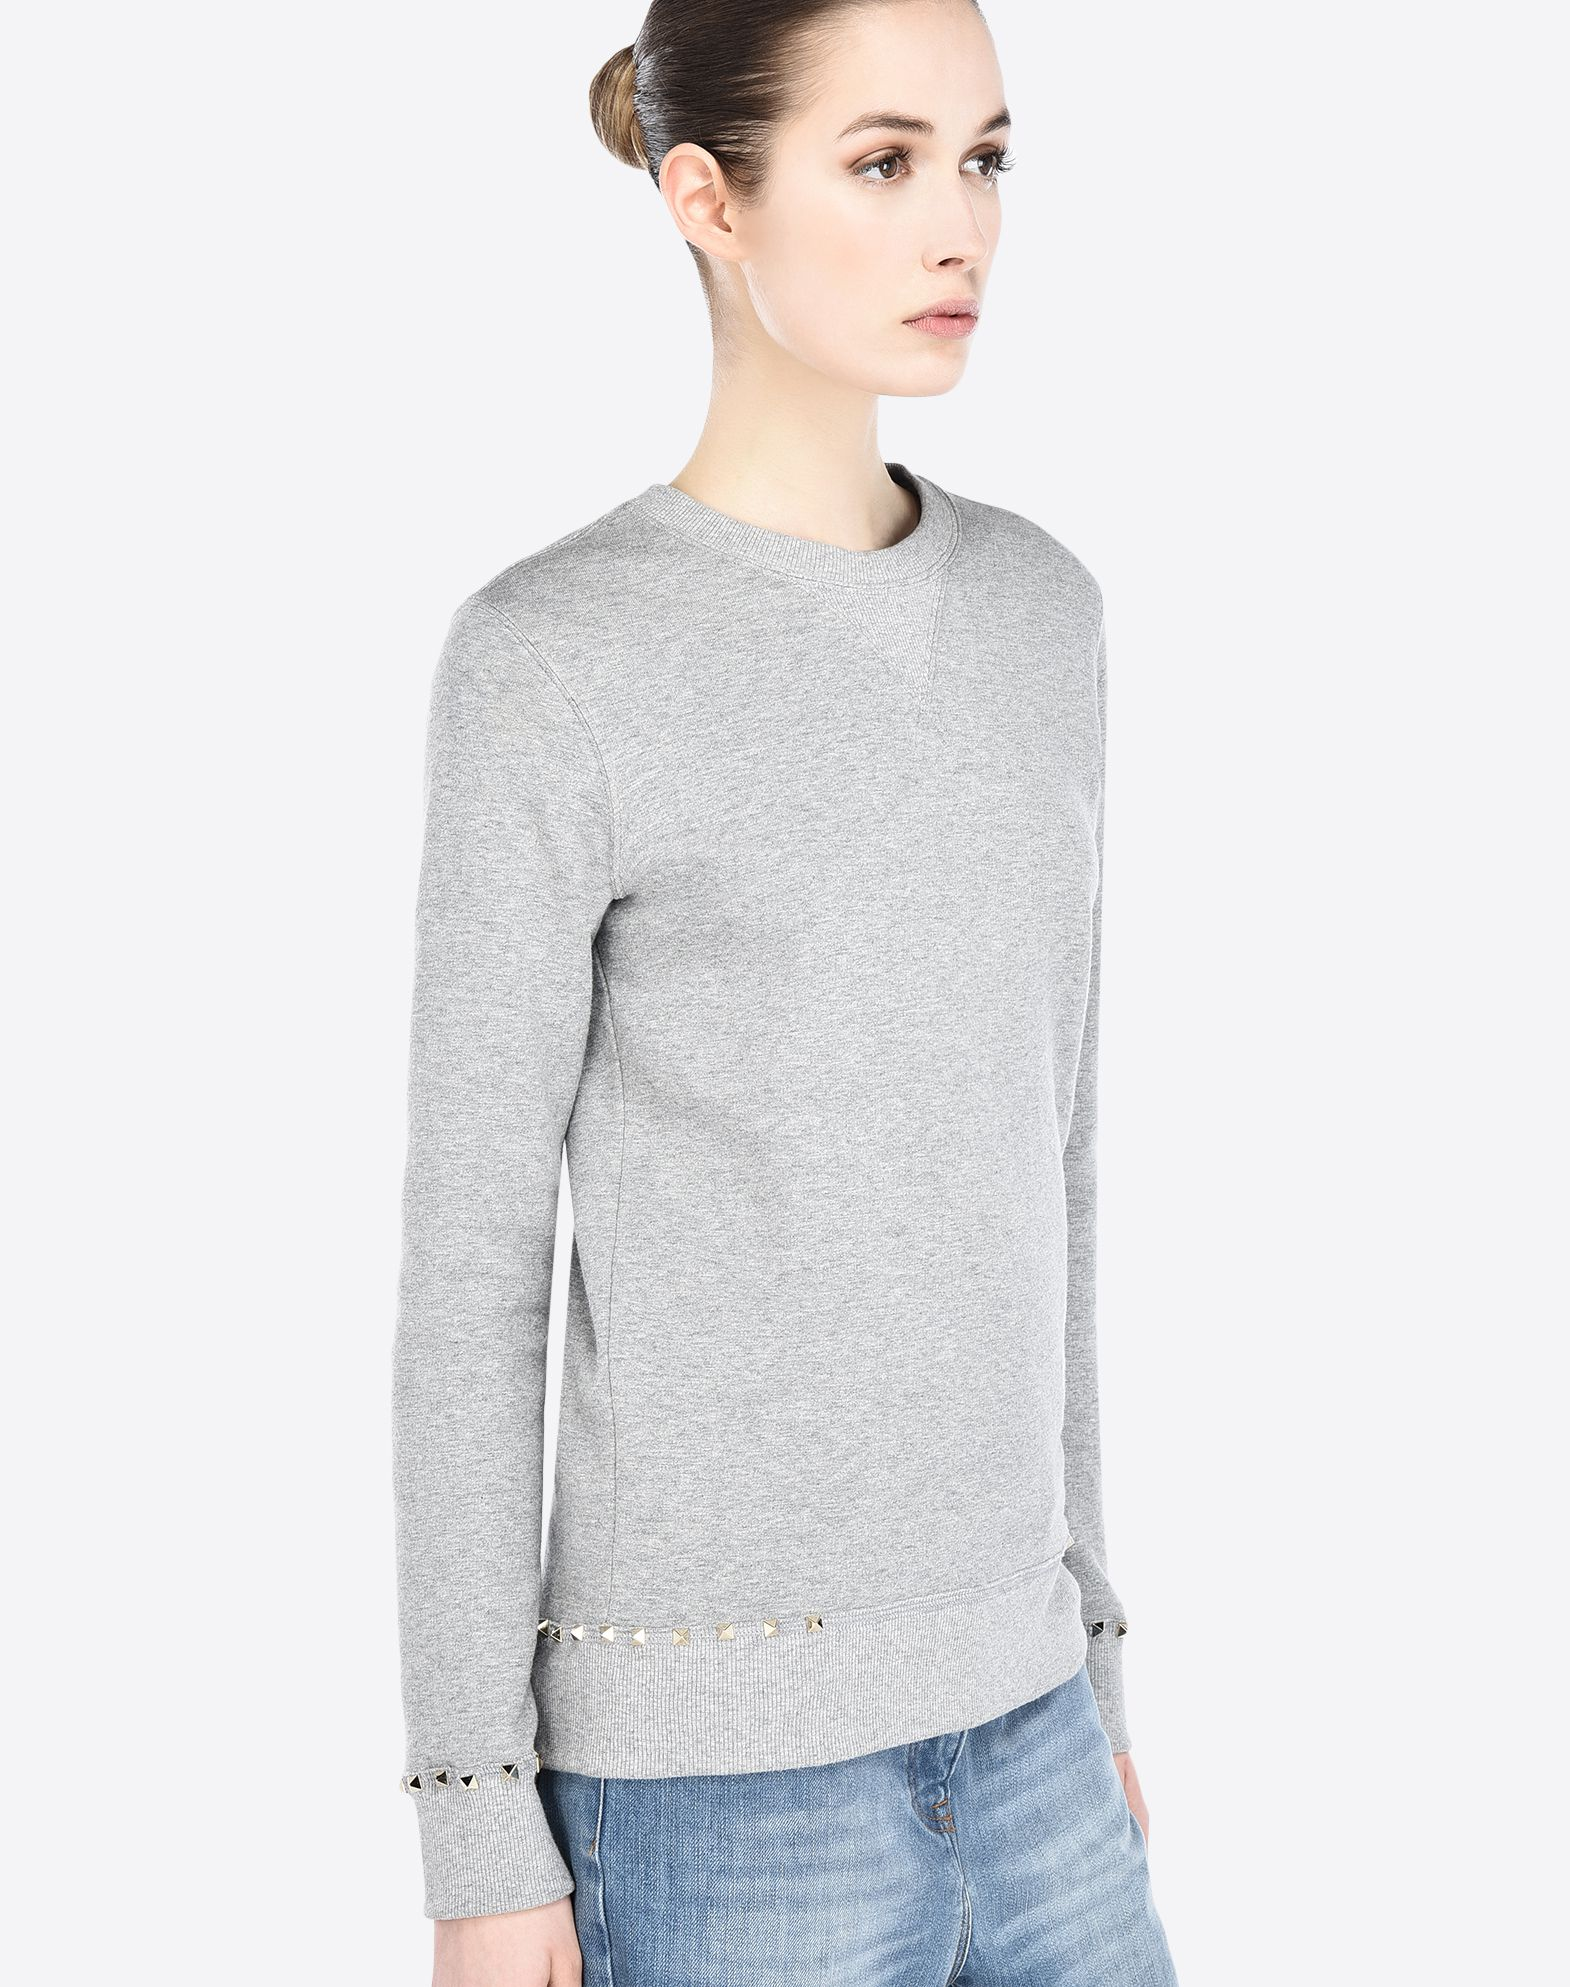 Free Shipping Marketable Rockstud sweatshirt - Grey Valentino Clearance Footlocker Many Kinds Of Professional  Outlet Affordable vPjyQ